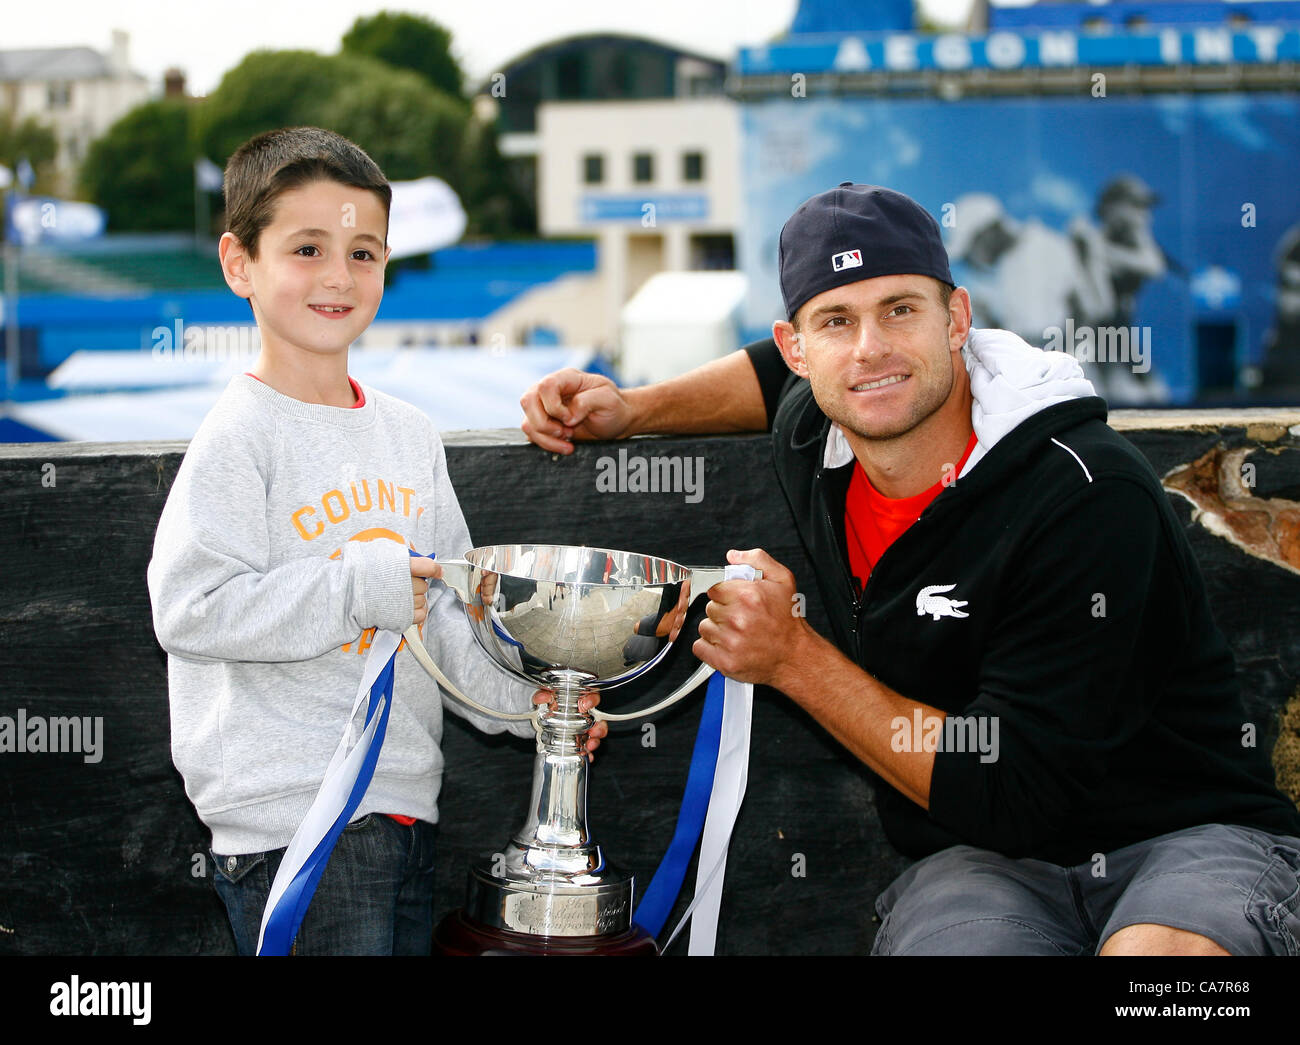 23.06.12 Devonshire Park, Eastbourne, ENGLAND: Andy Roddick (USA) with his ATP Tour title trophy at the AEGON INTERNATIONAL - Stock Image